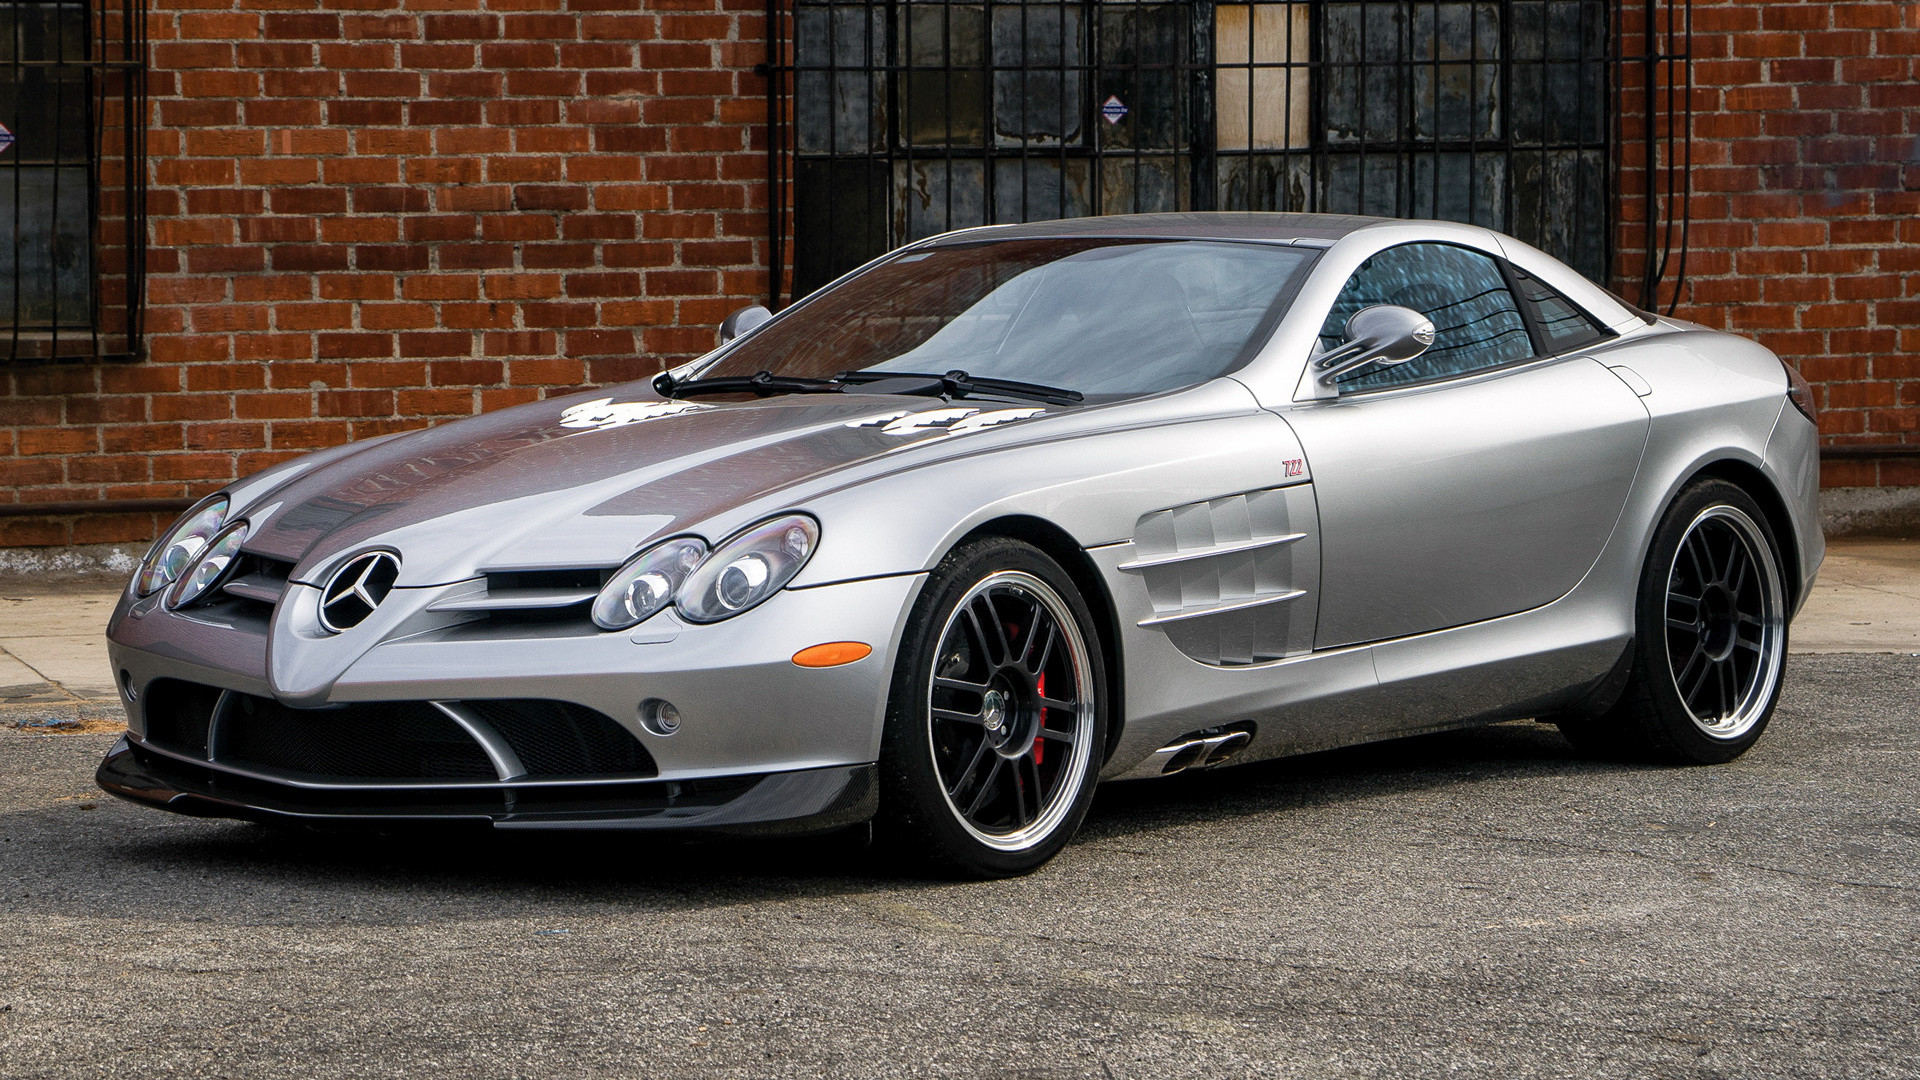 Mercedes Benz Slr Mclaren Wallpaper 62 Images